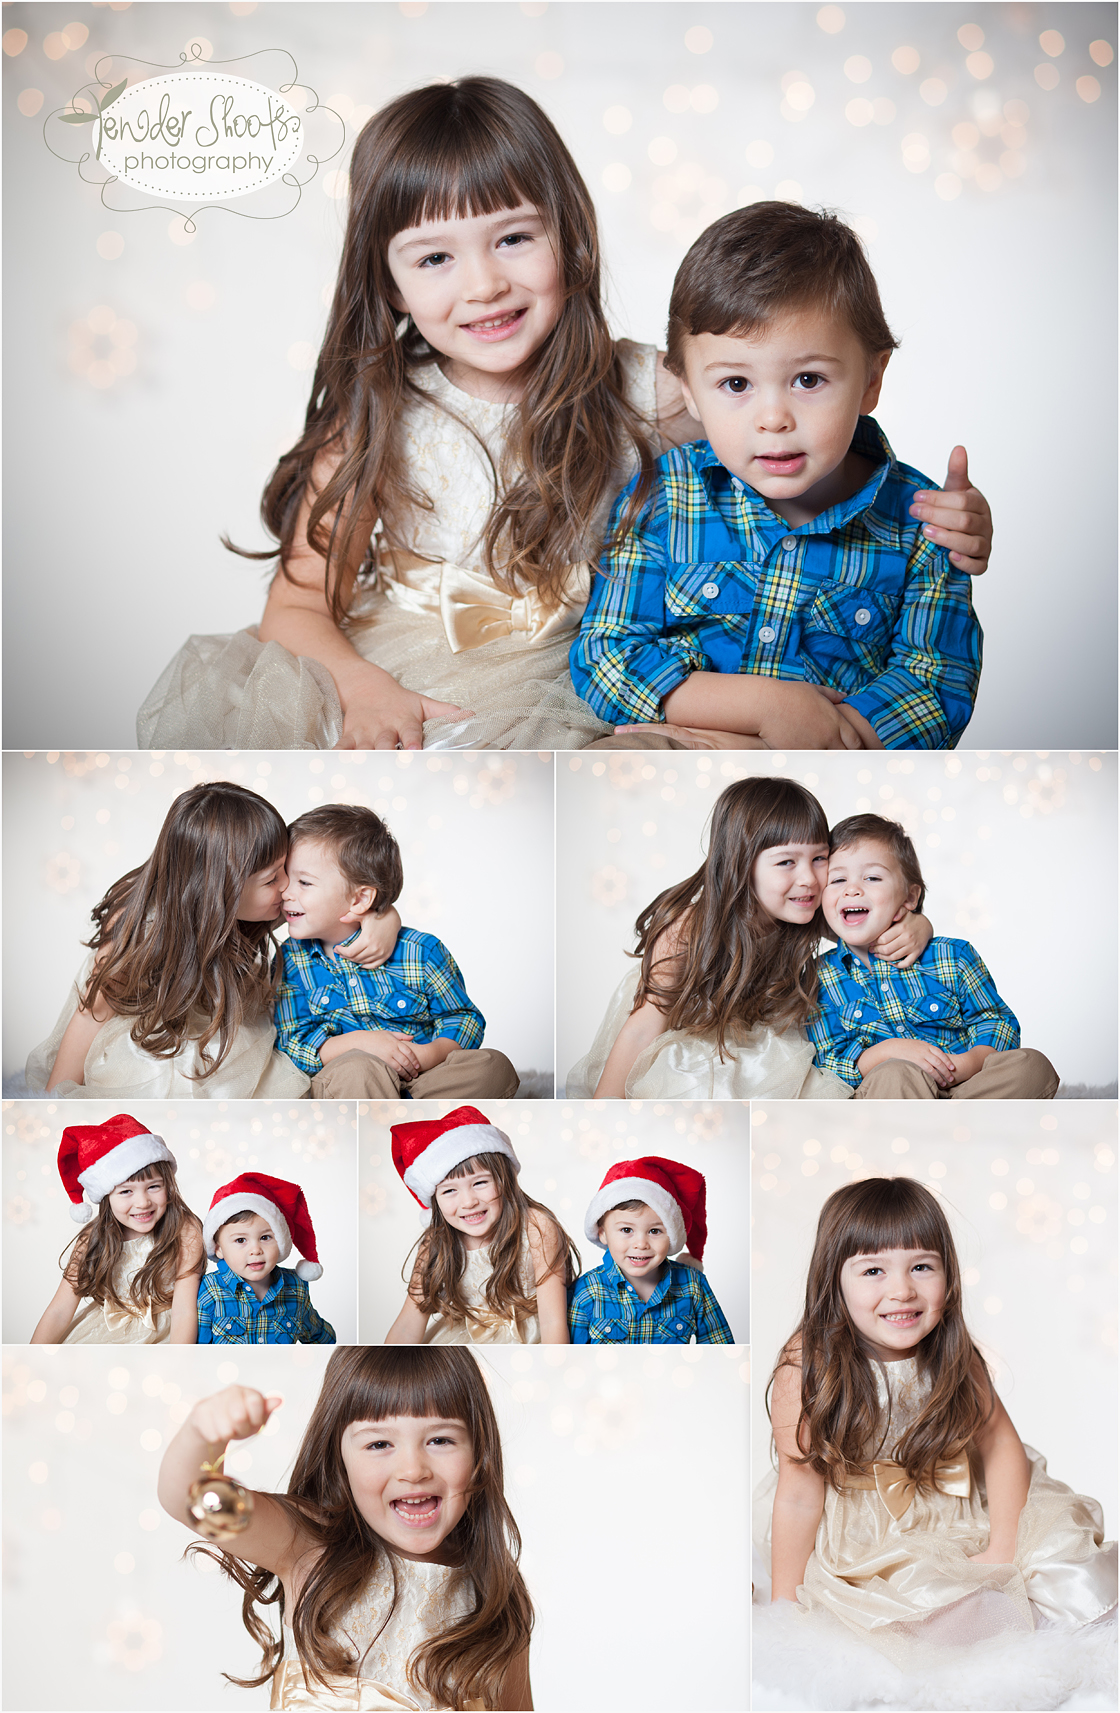 Tender Shoots Christmas Photography Sessions